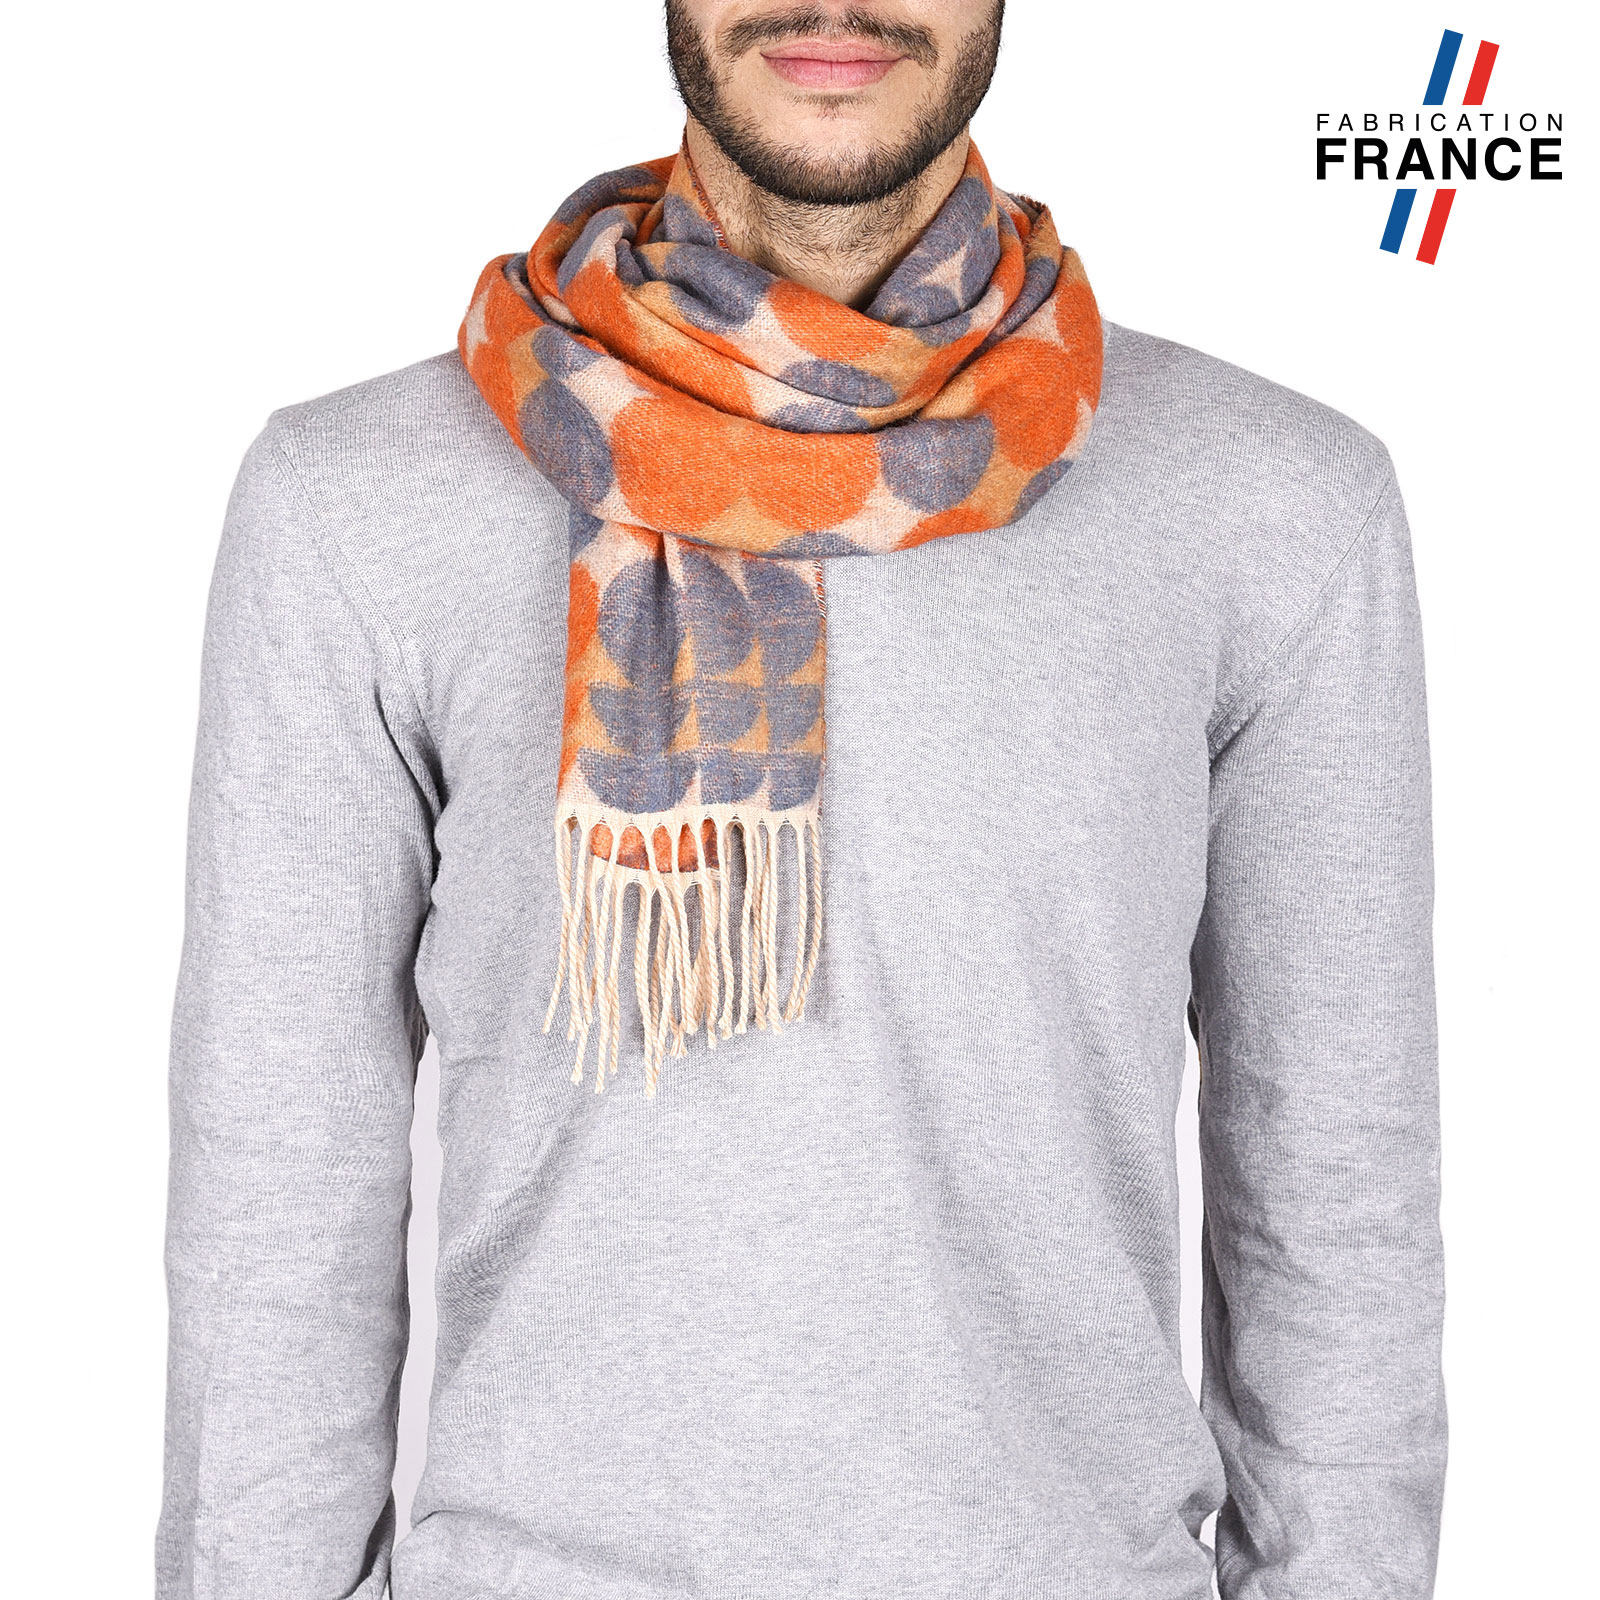 Echarpe homme hiver Orange, motifs bulles - Made in France 2a27ad0fd1f